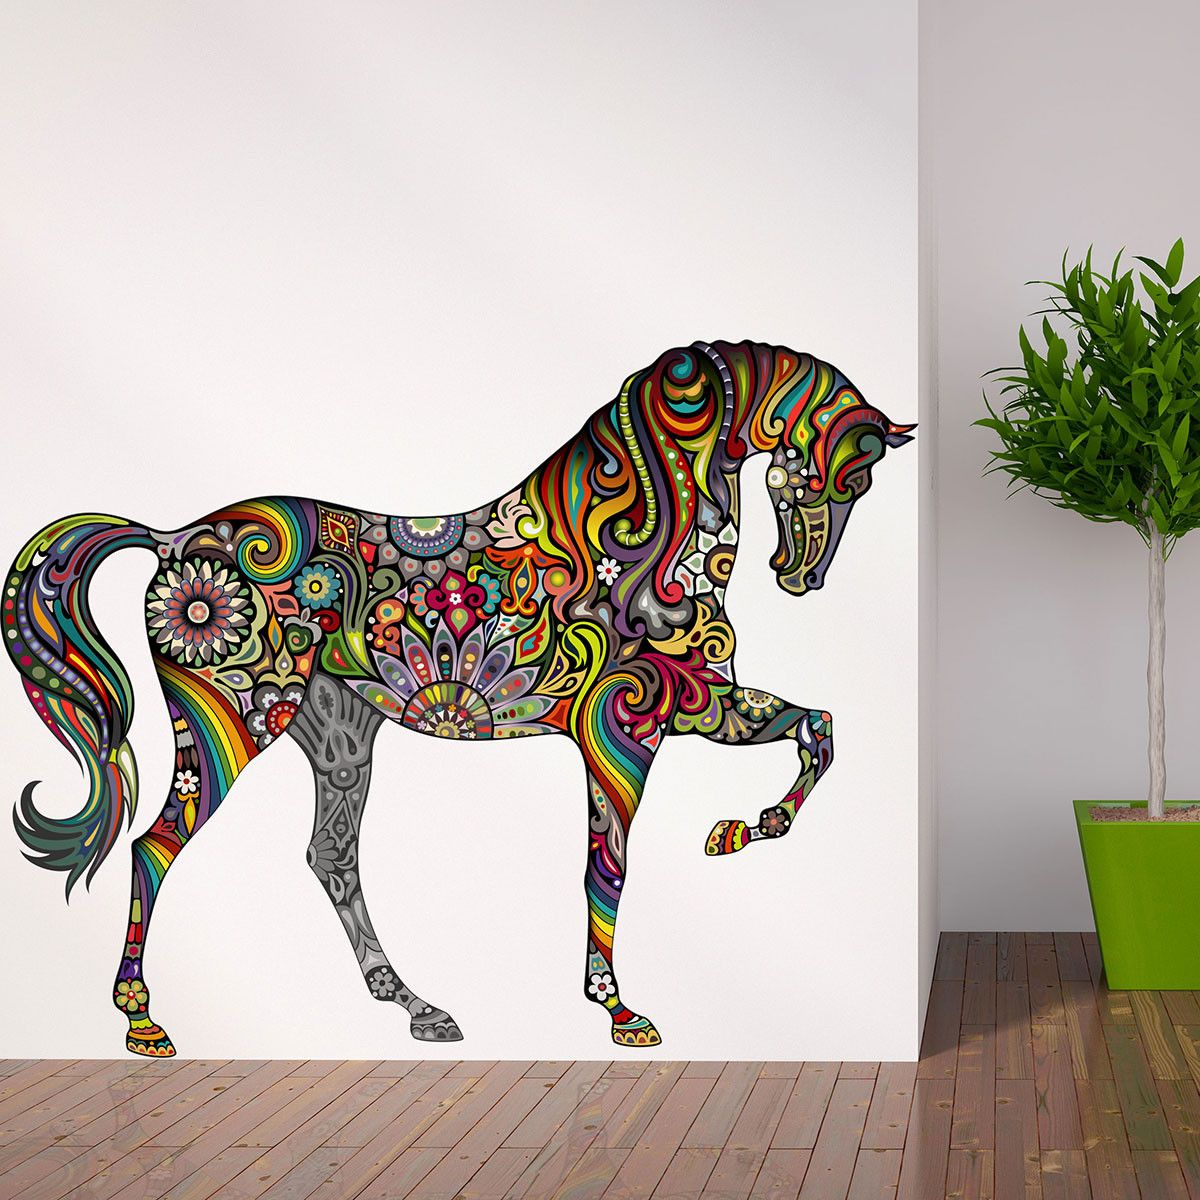 A Horse of Many Colors Wall Sticker - Rainbow Floral Horse Wall Decal